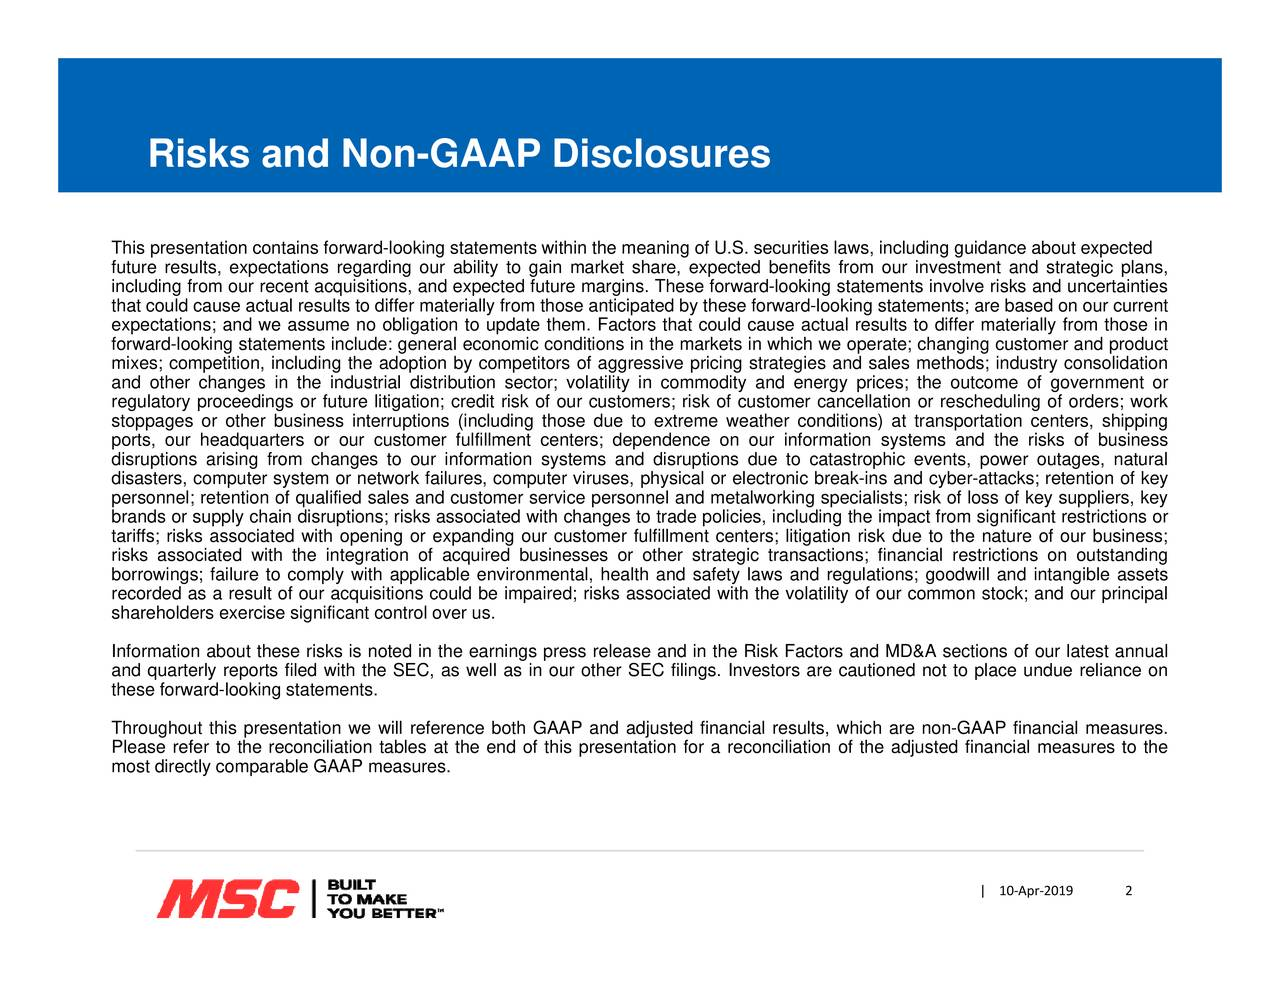 ‐019 ‐pr 10   physical or electronic break-ins and cyber-attacks; retention of key y in commodity and energy prices; the outcome of government or Risks and Non-GAAP Disclosures Thfstnrtudtnglrrieddlt;titooatitu,thcidct;berewgieiiaforwdldaotcsota;gnaeefolptoeetrvleliuftt,,-laceeletsatecotiomce